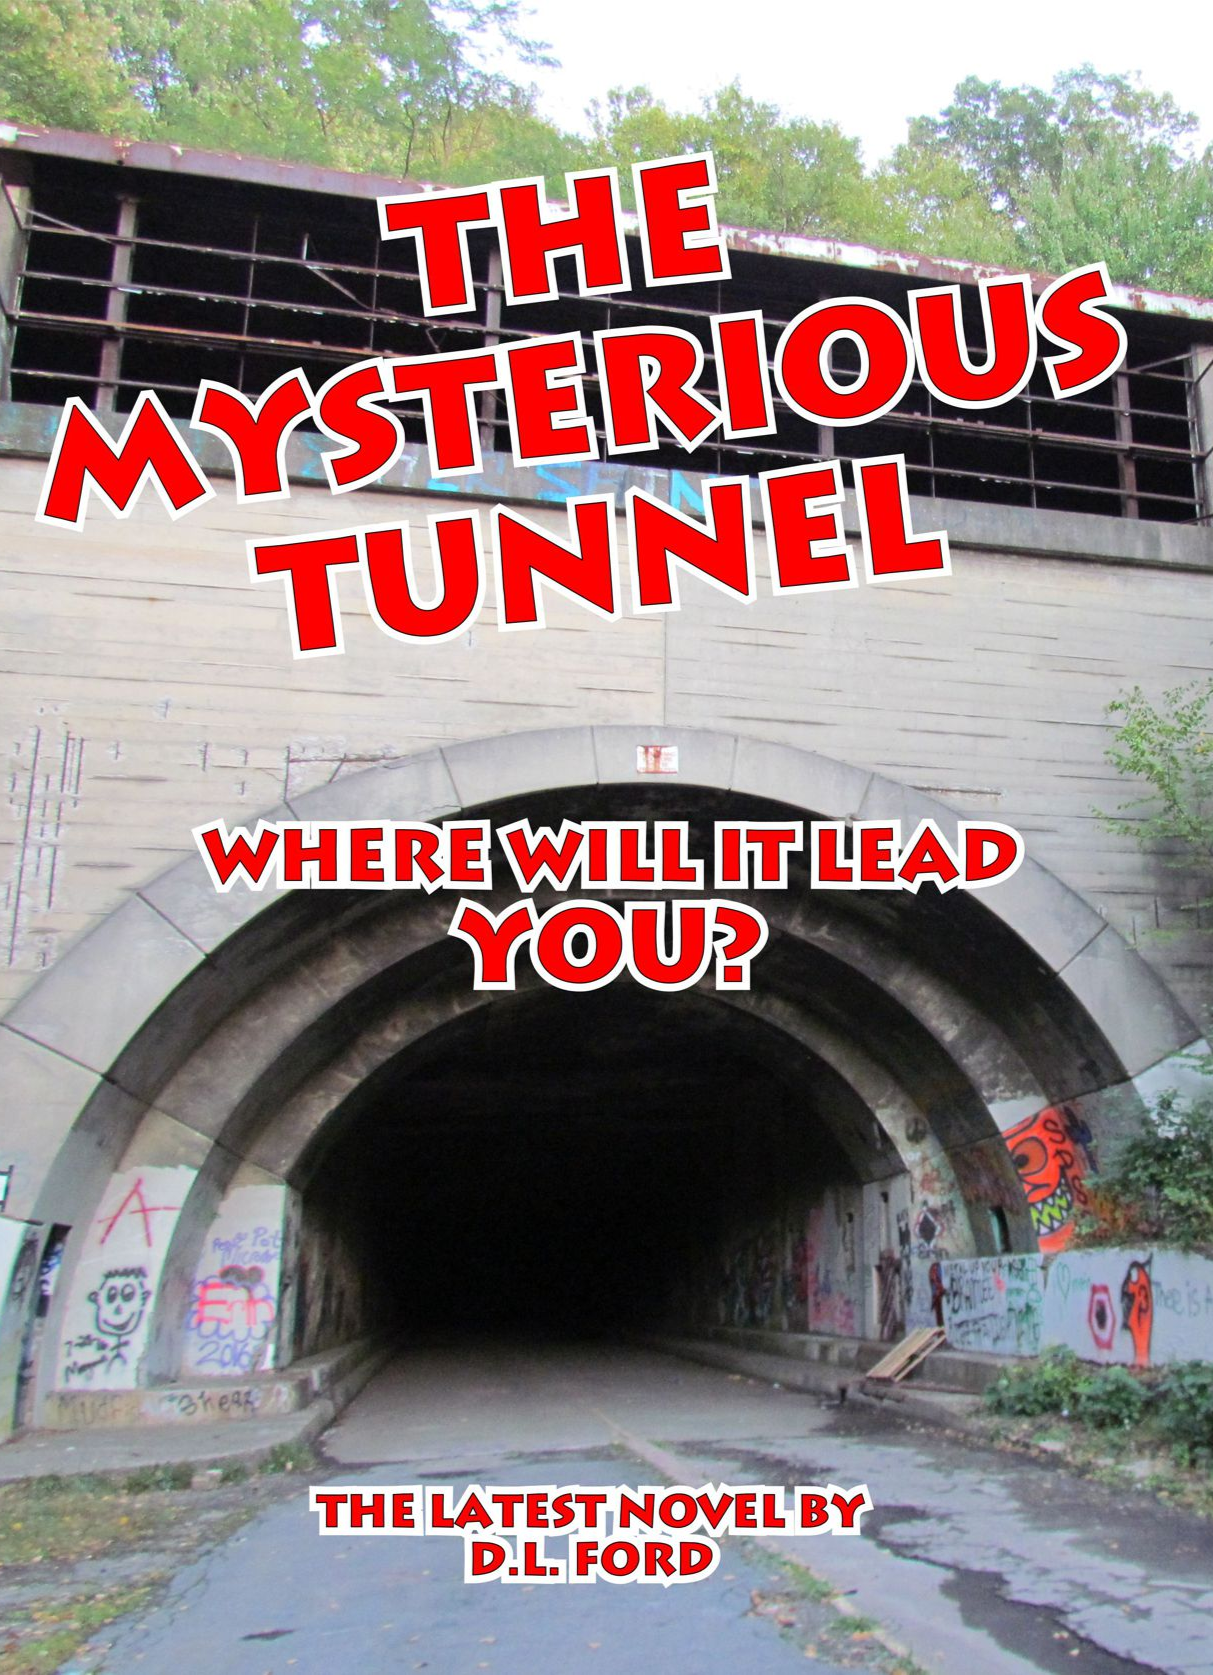 The Mysterious Tunnel